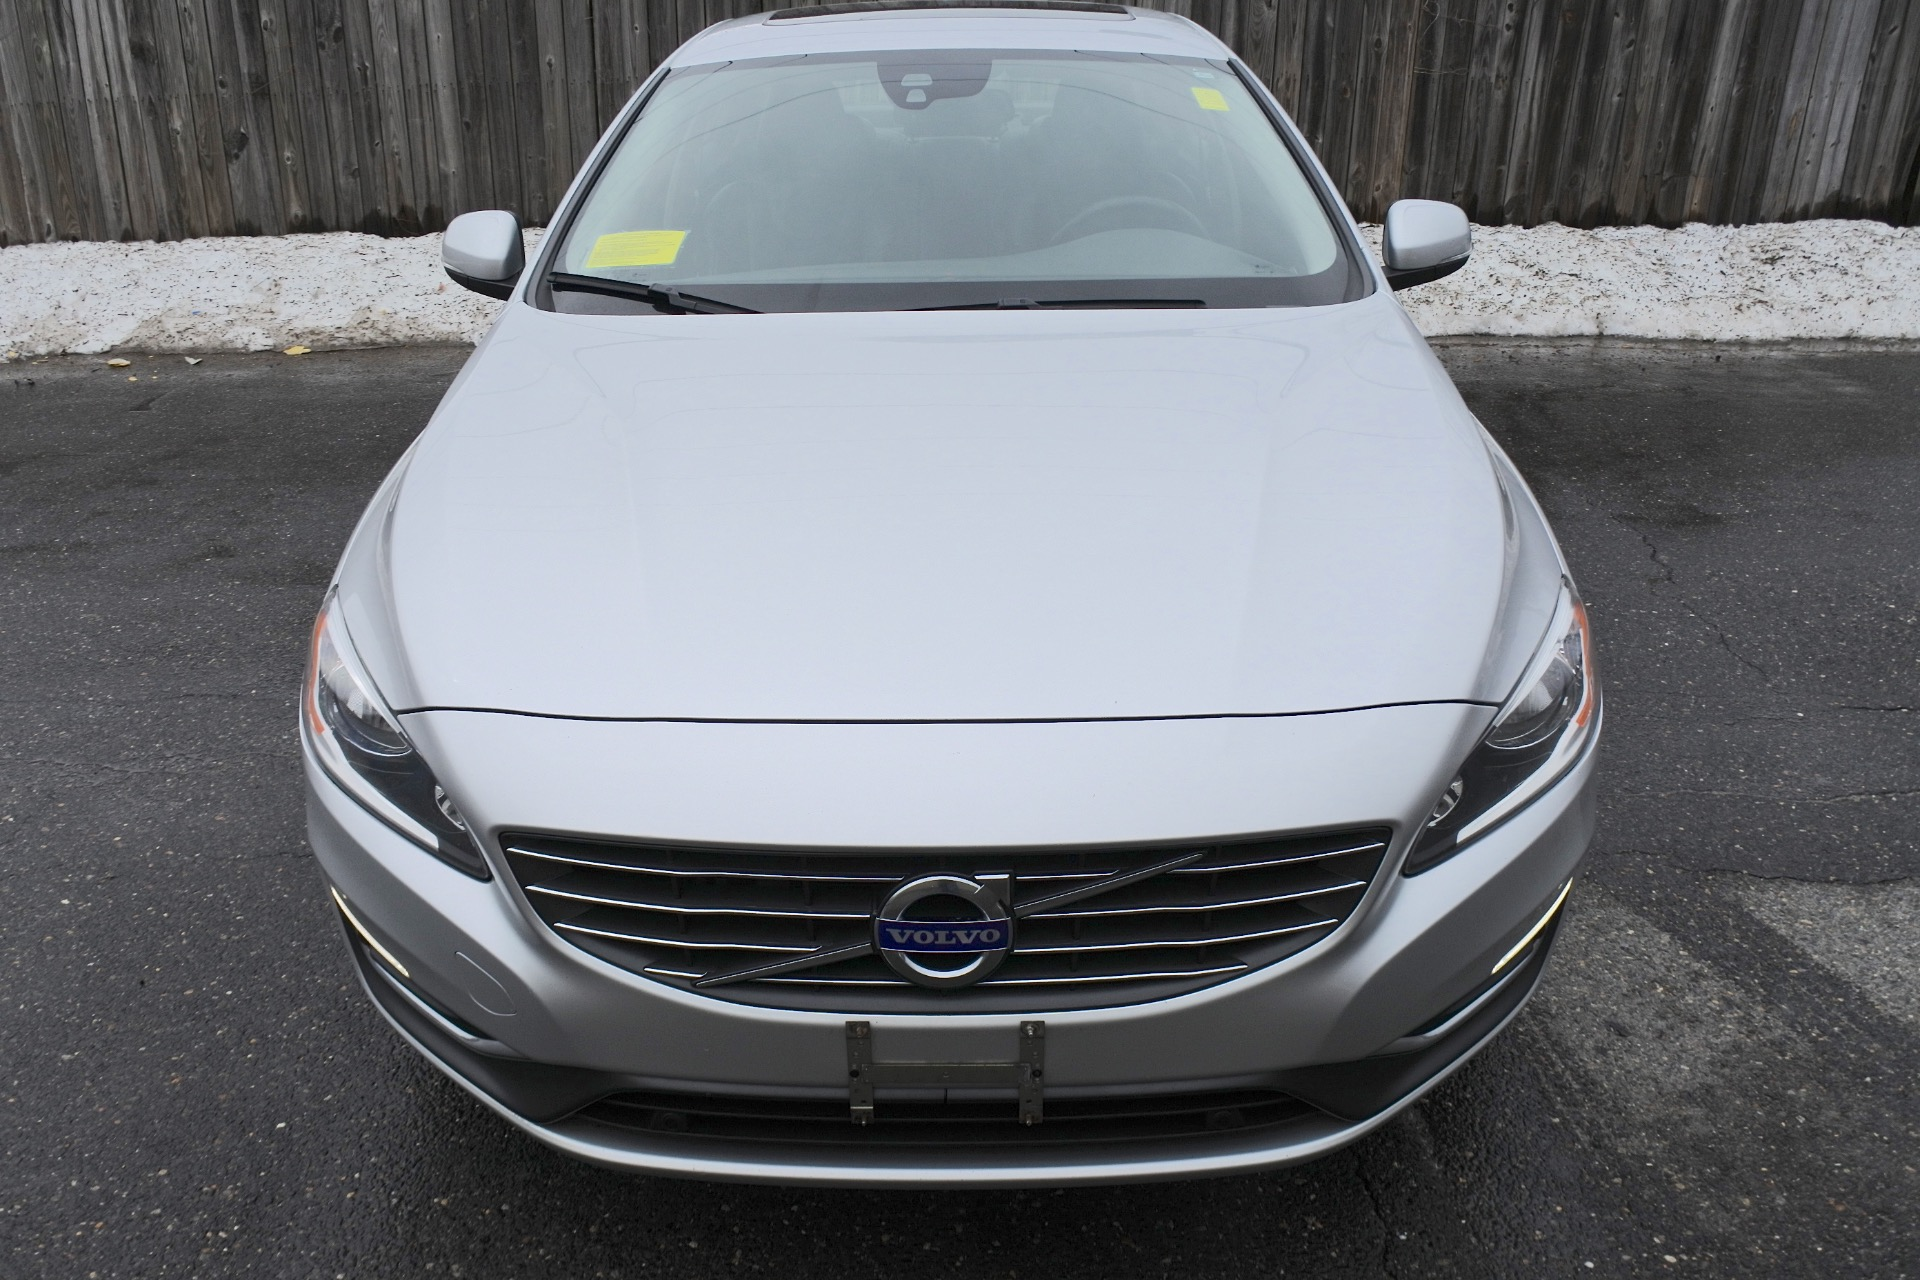 Used 2014 Volvo S60 4dr Sdn T5 Premier AWD Used 2014 Volvo S60 4dr Sdn T5 Premier AWD for sale  at Metro West Motorcars LLC in Shrewsbury MA 7